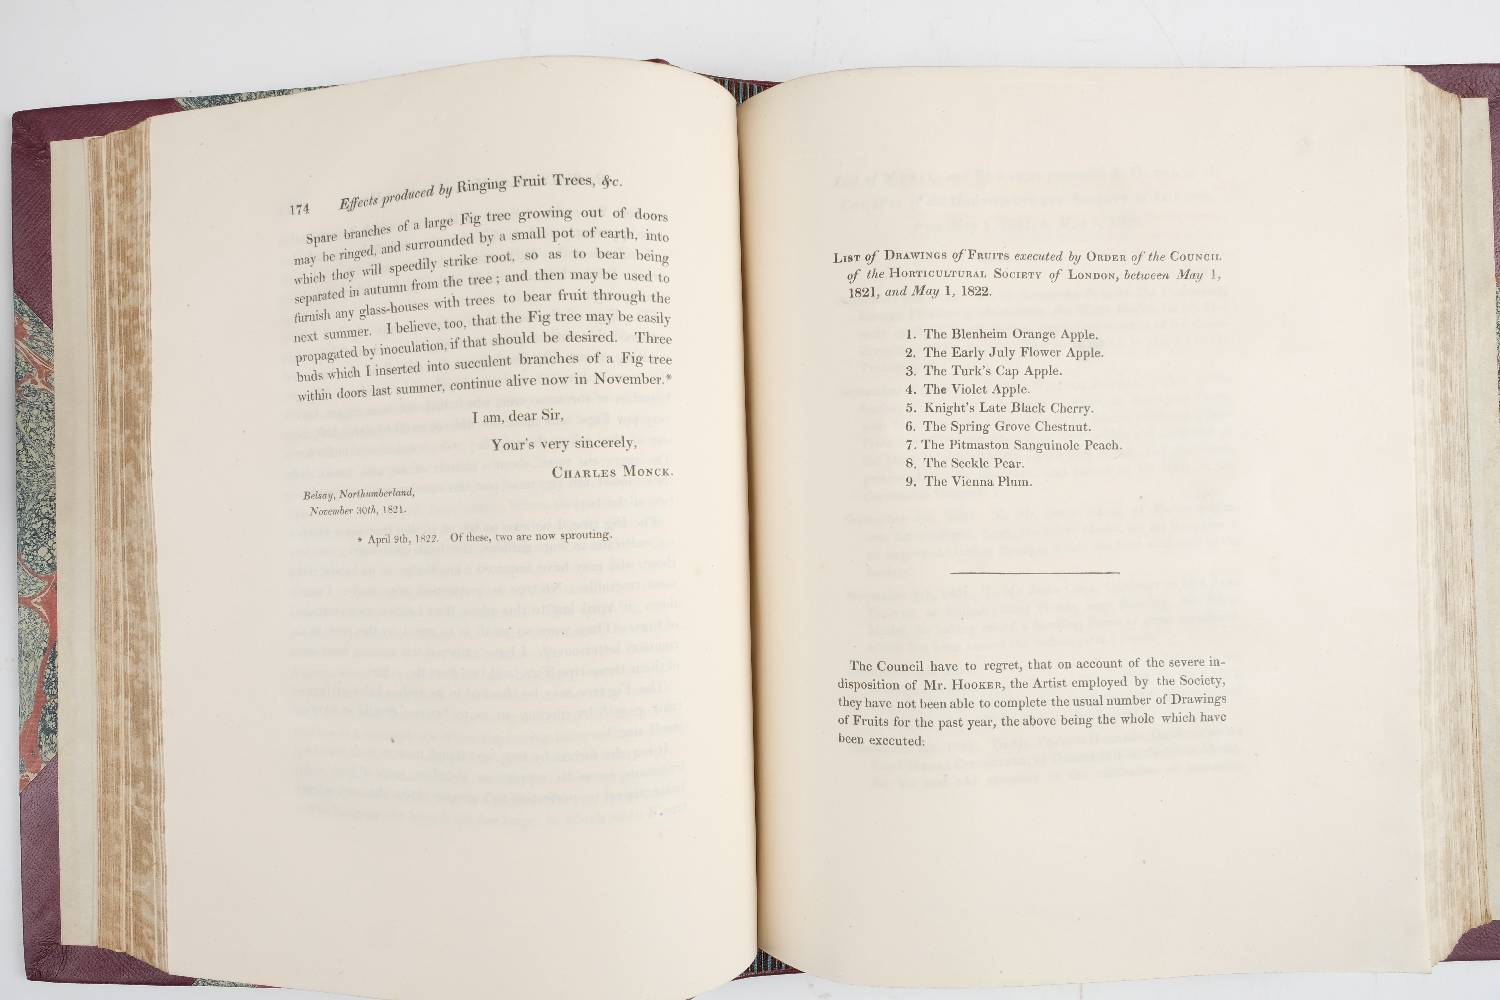 Lot 42 - Transactions of the Horticultural Society of London. volumes 1-7 First series, volumes 1-2 (of 3)